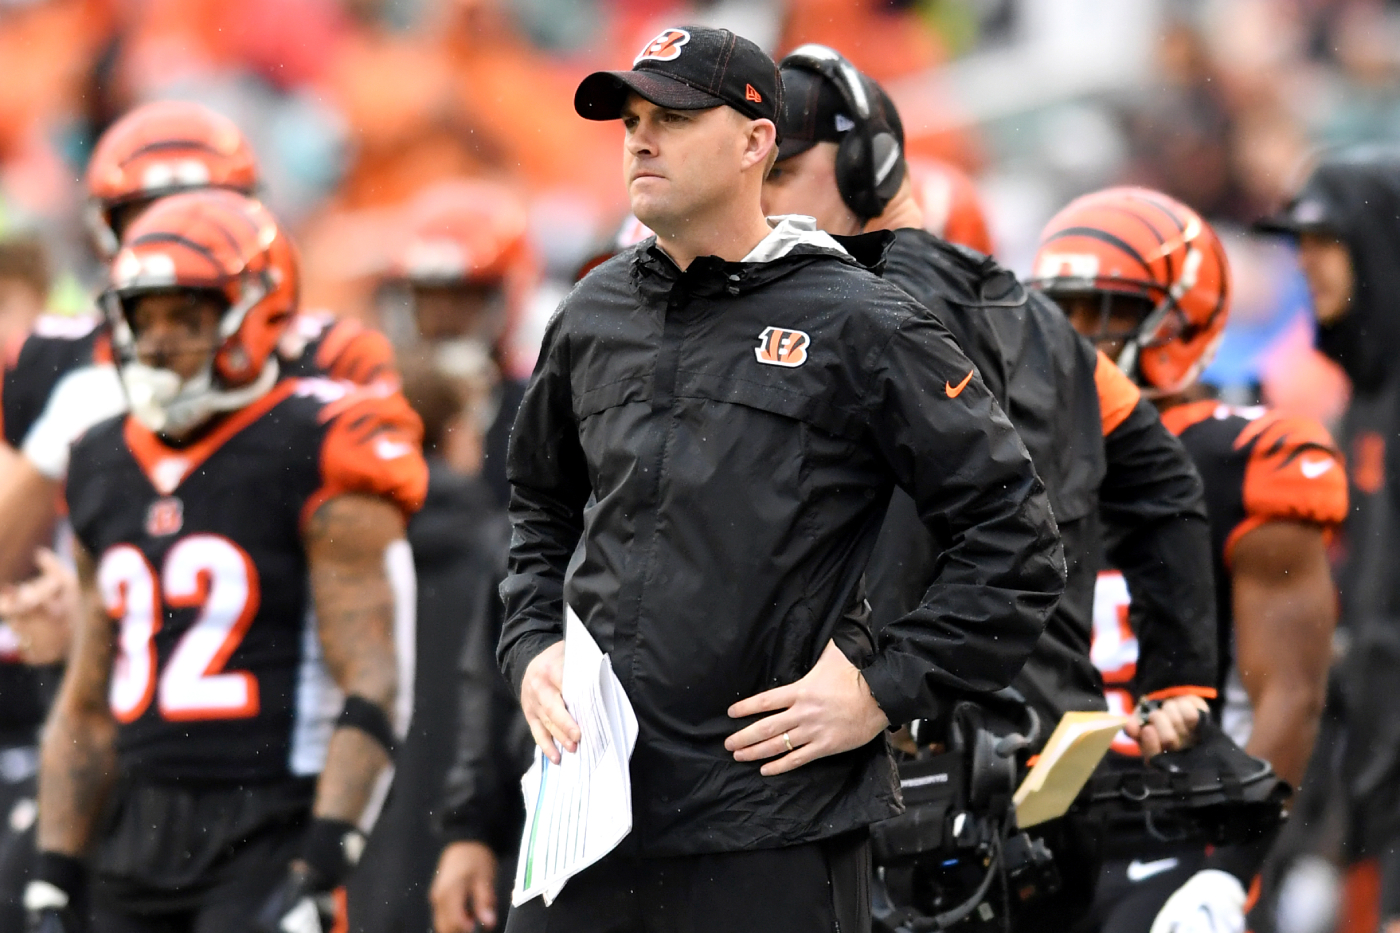 The Cincinnati Bengals have been a laughingstock on the football field. However, they reportedly have a toxic problem off of it.